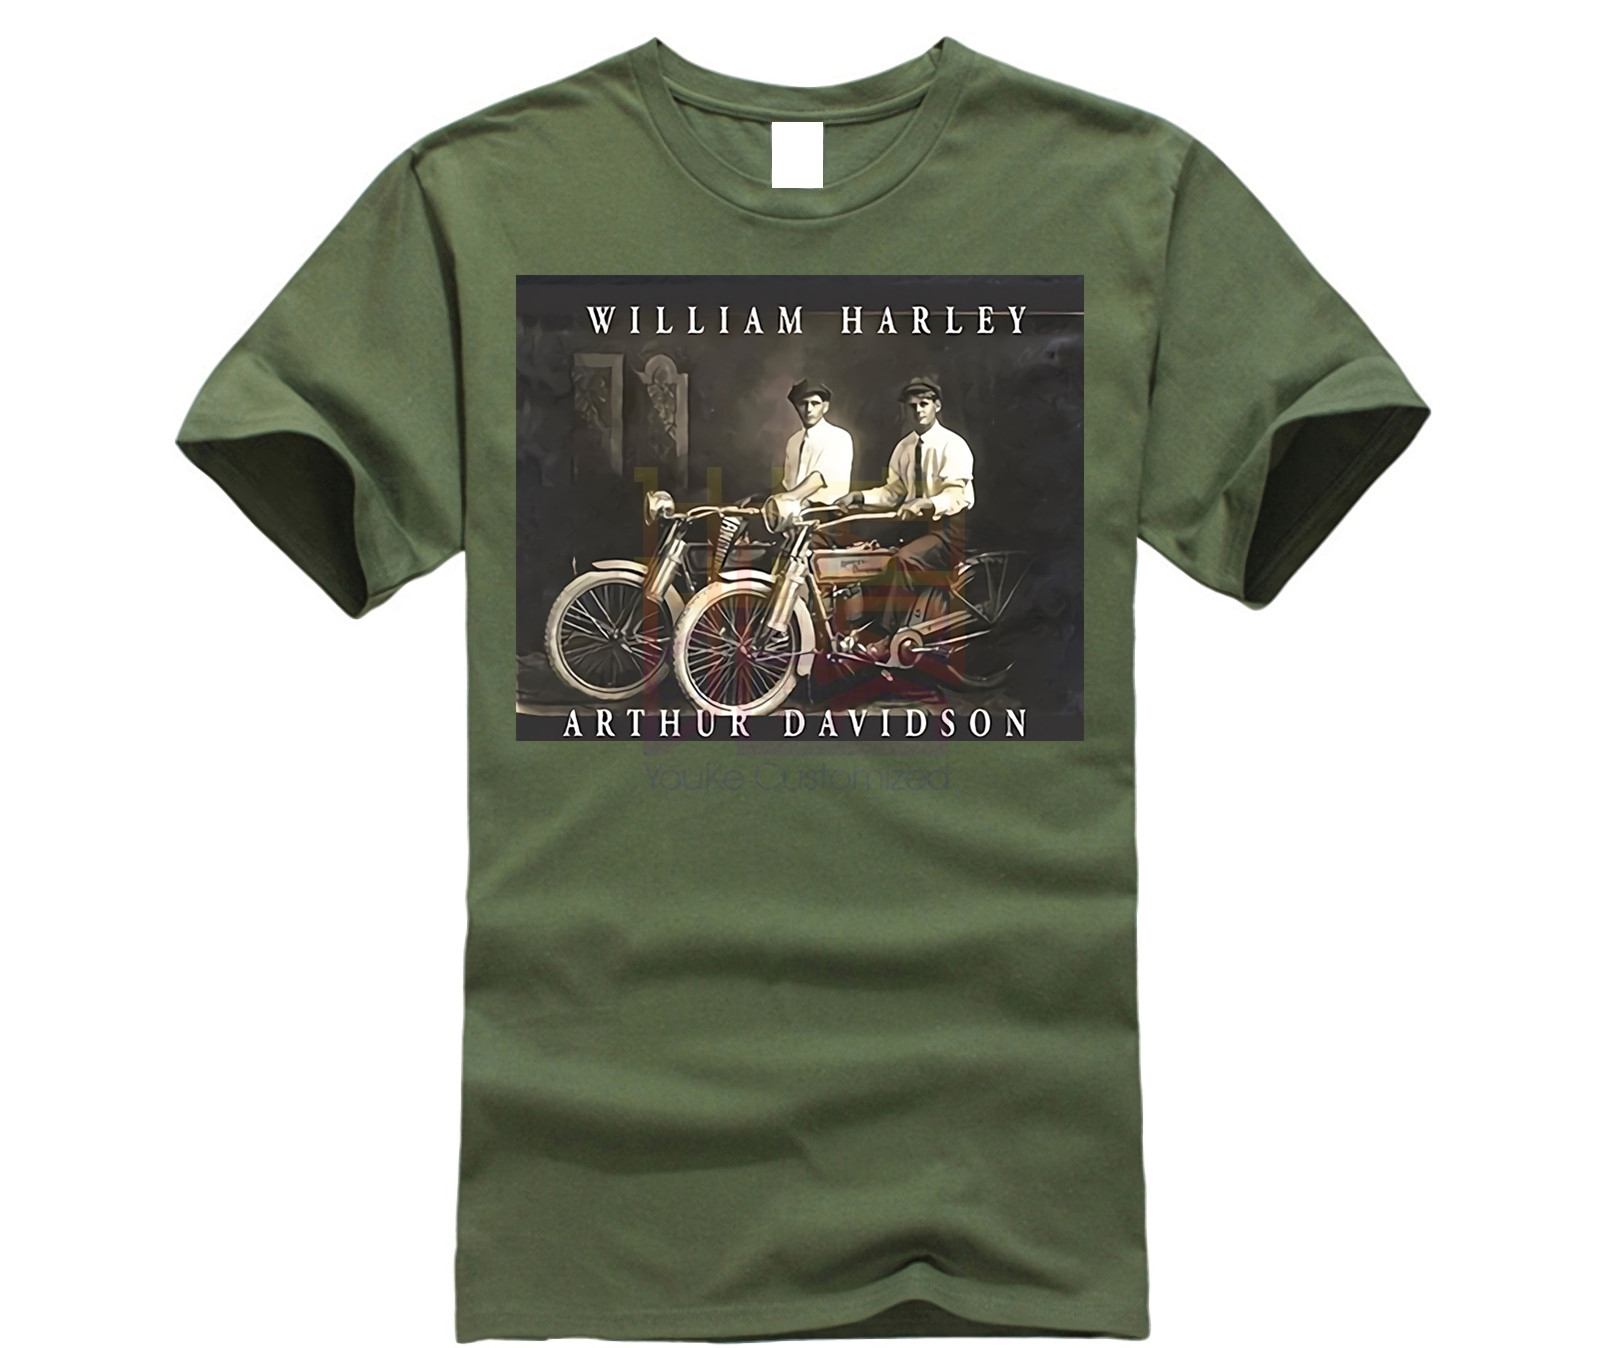 William Harley & Arthur Davidson On Their Motorcycles, T-Shirt, All Sizes NWT Mens 2019 Fashion Brand T Shirt O-Neck 100%cotton